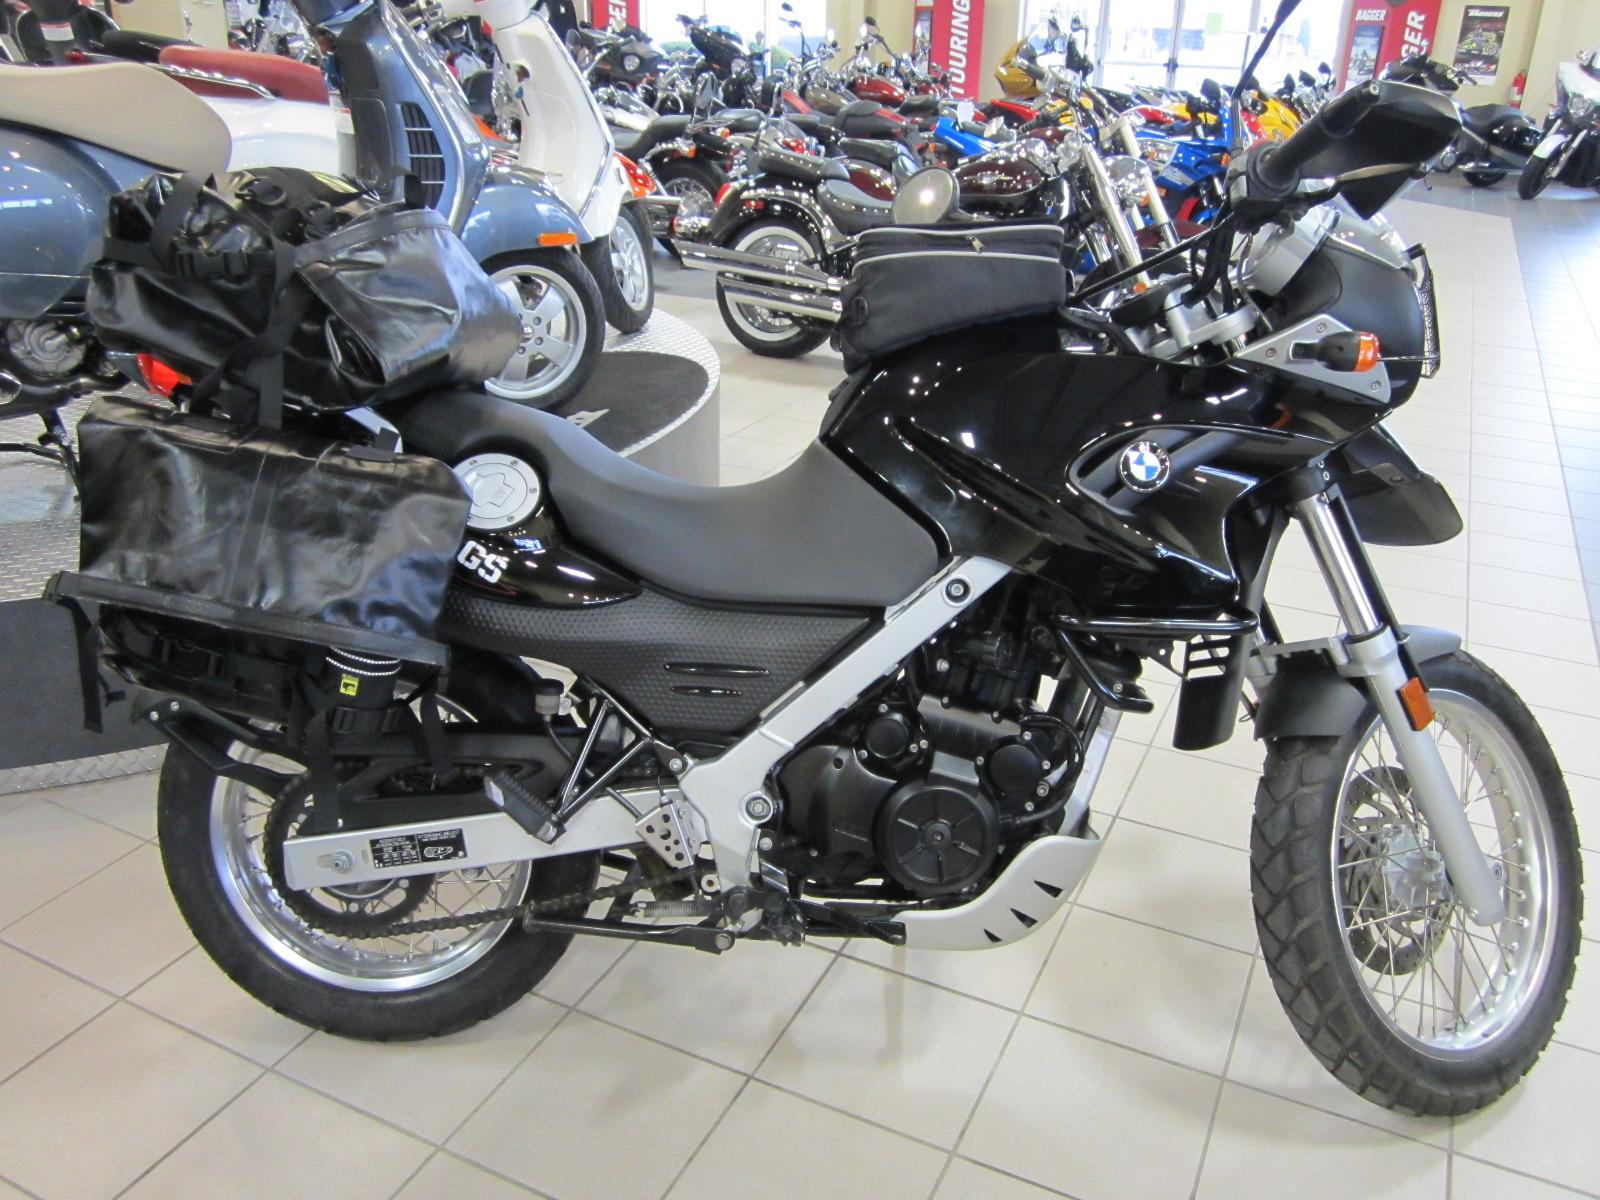 2009 BMW G650GS, motorcycle listing